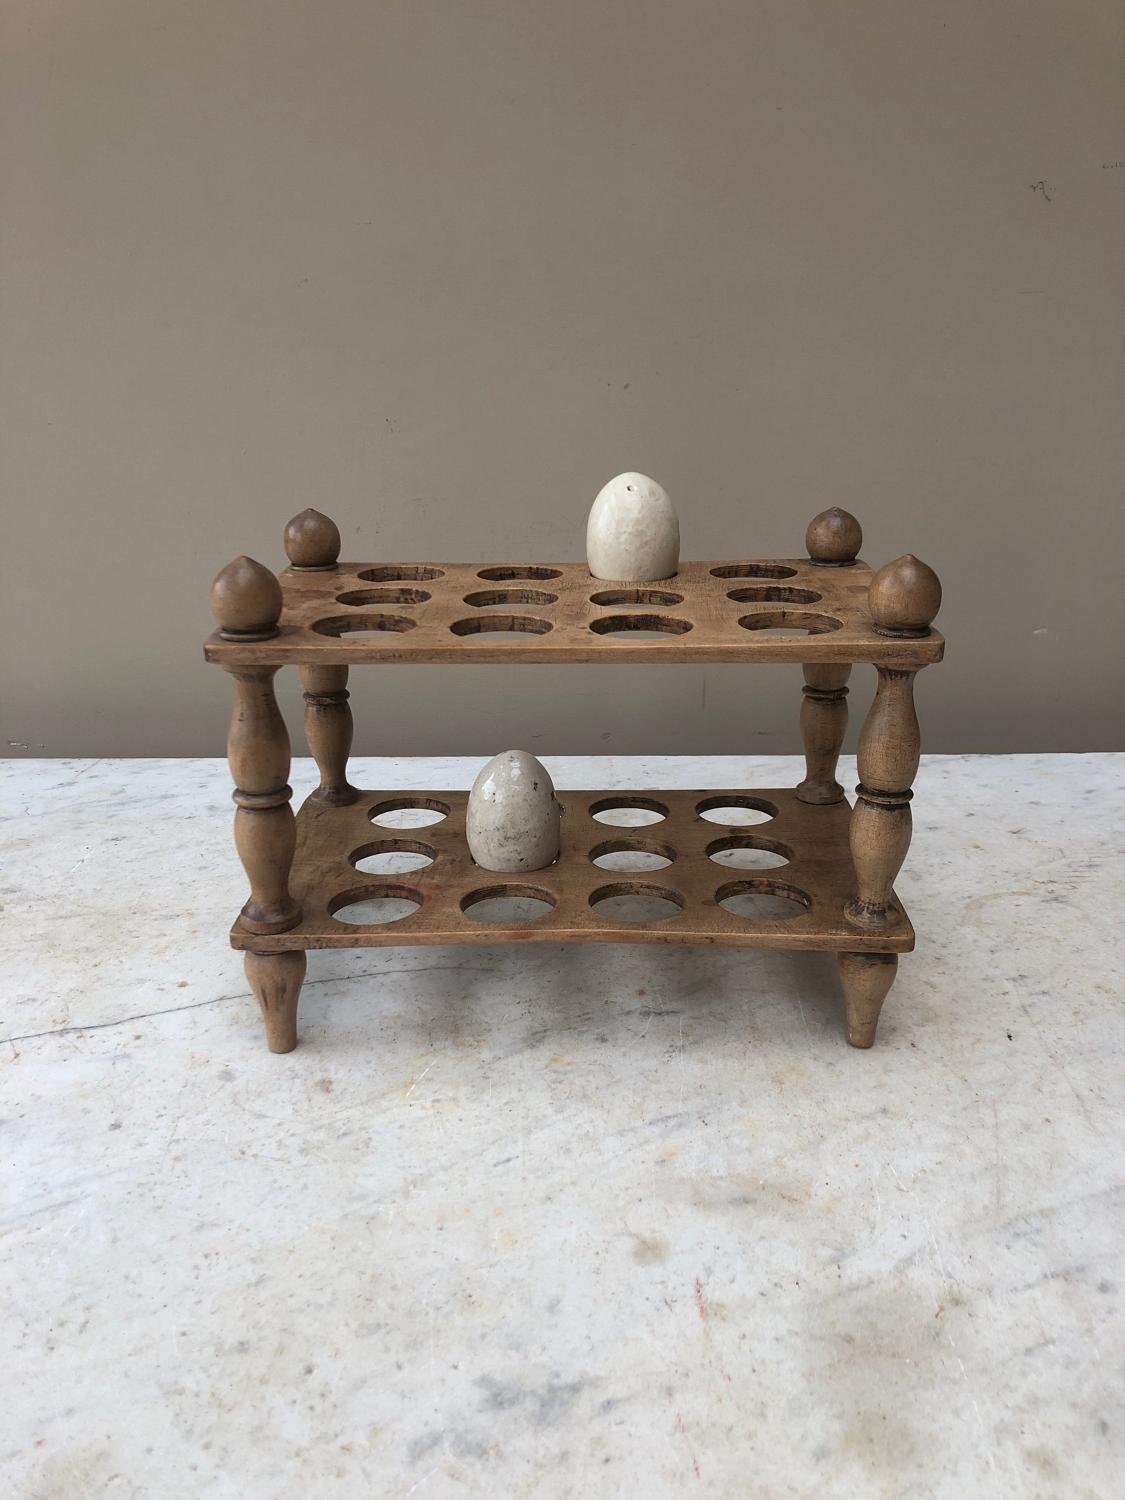 Victorian Treen Two Tier Egg Rack with Turned Column Supports